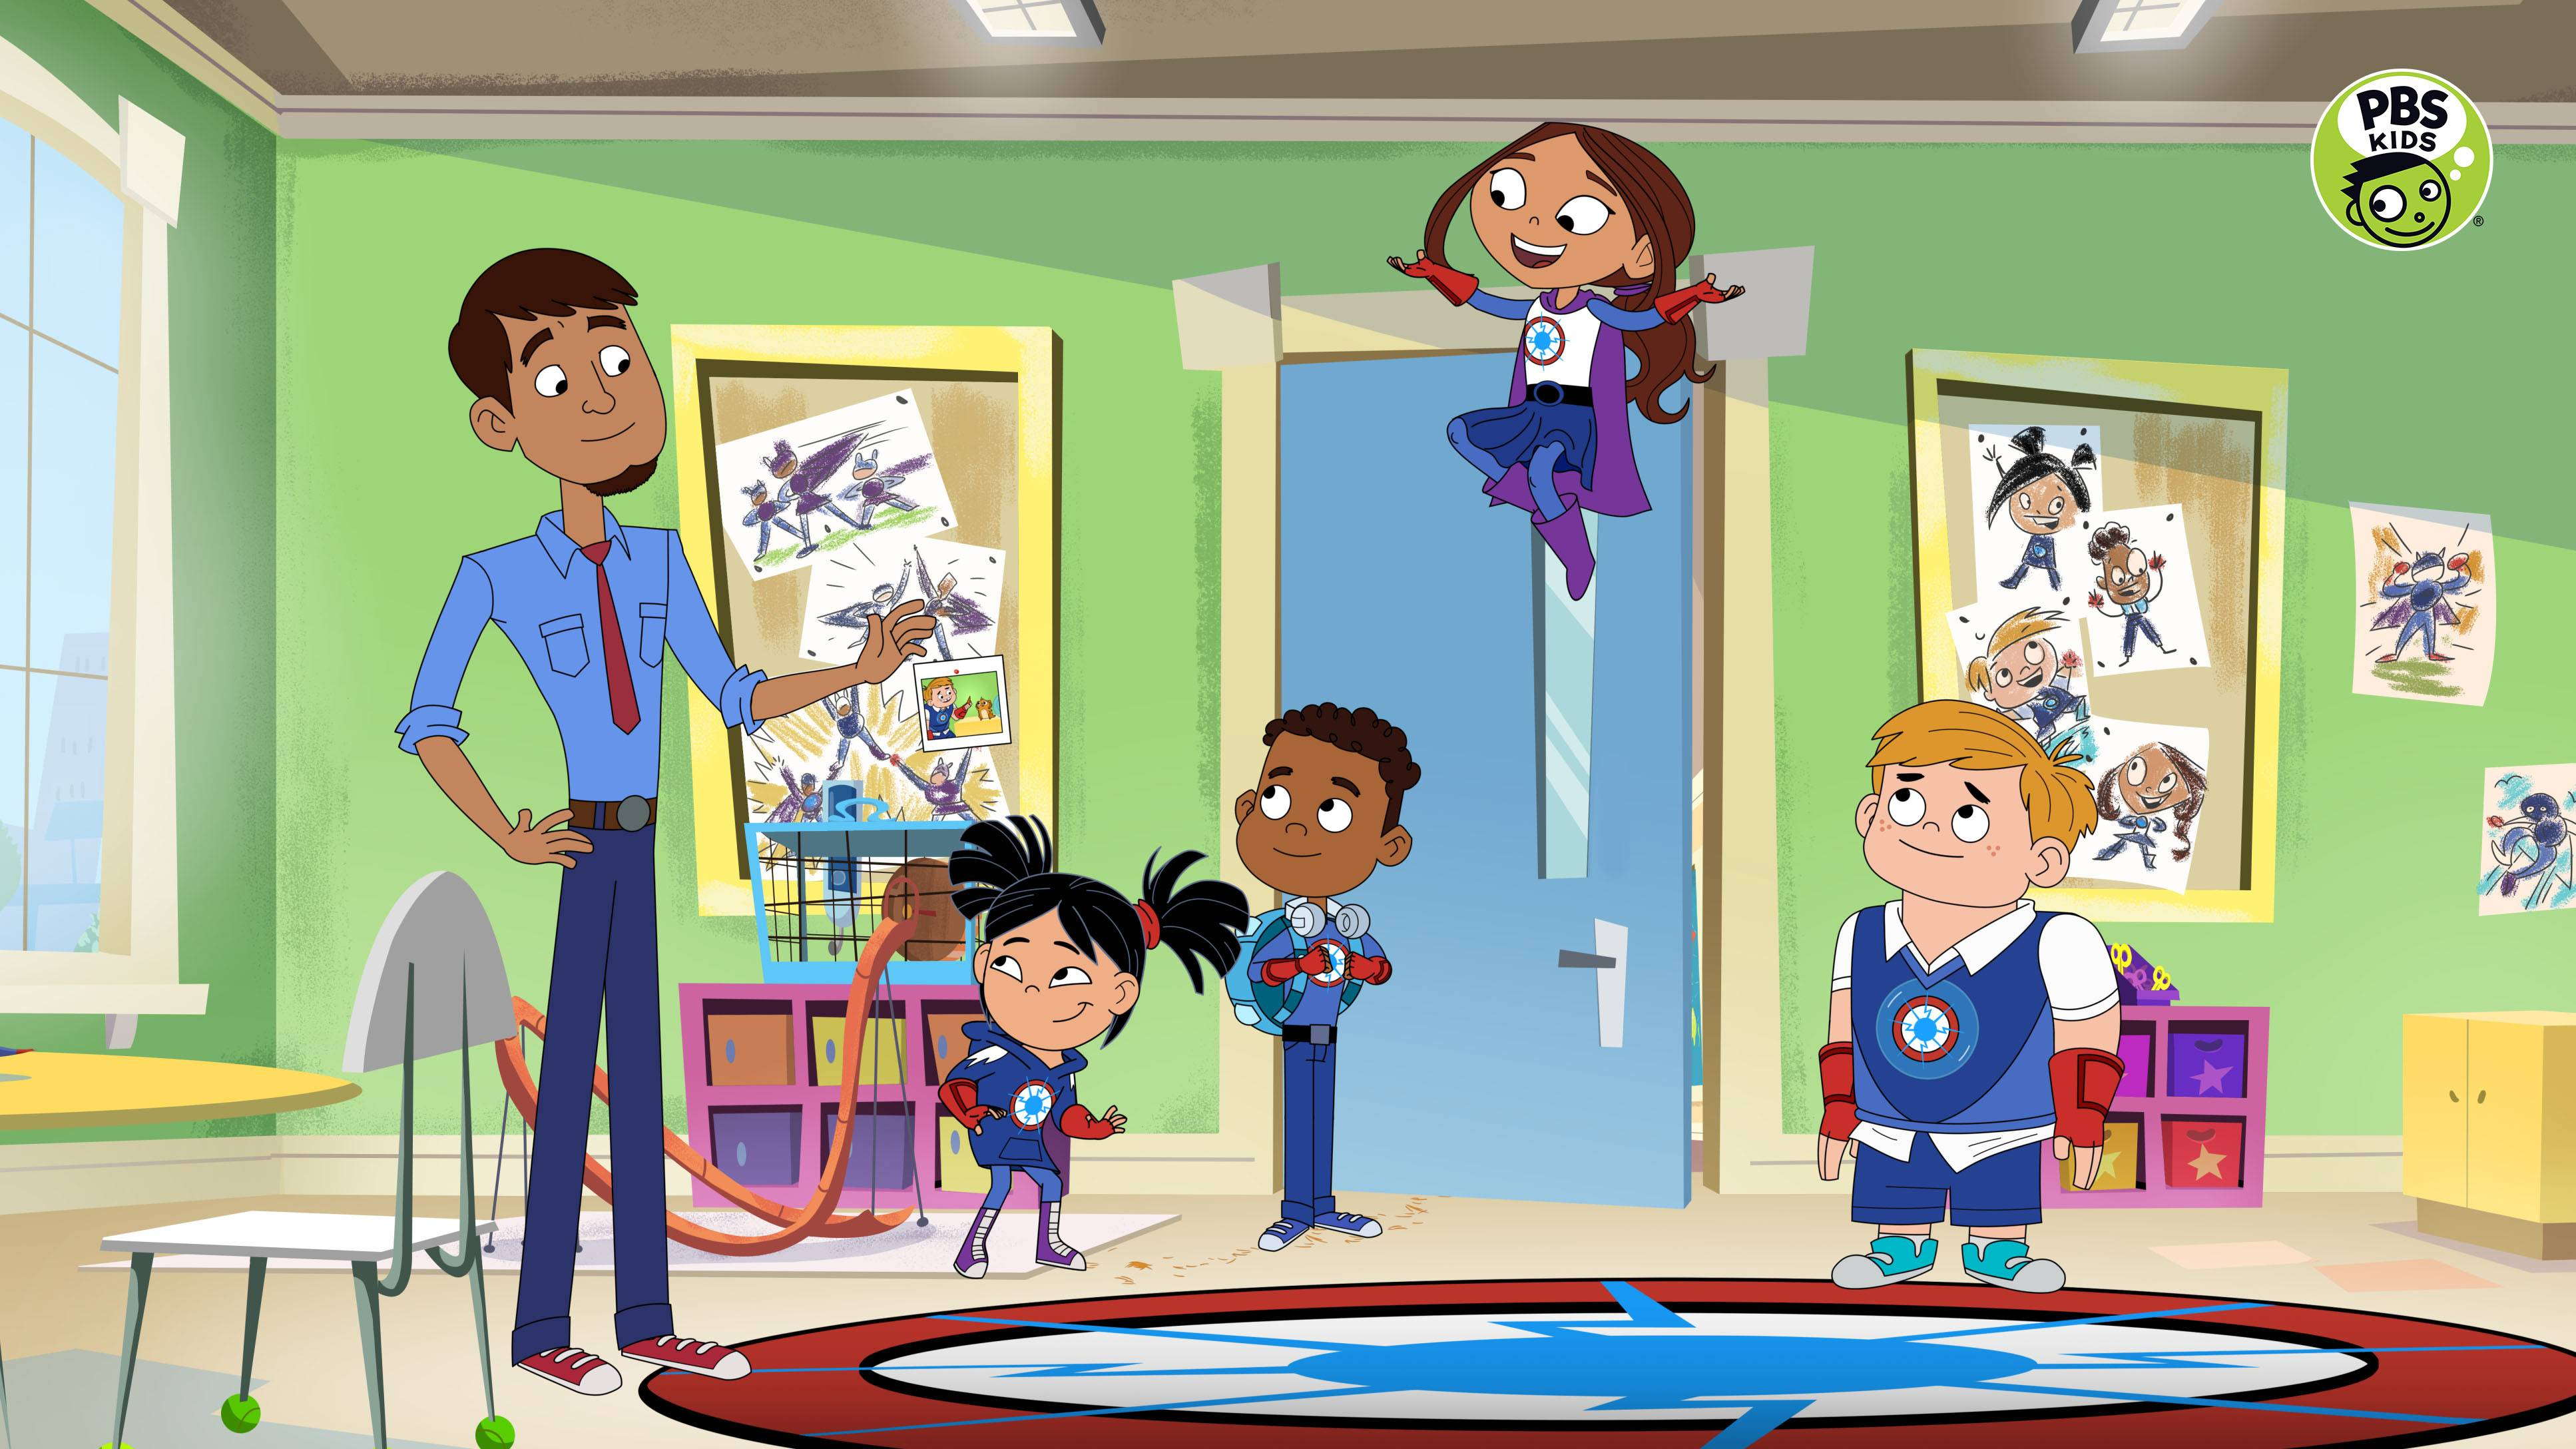 PBS KIDS Announces New Series HERO ELEMENTARY, Premiering